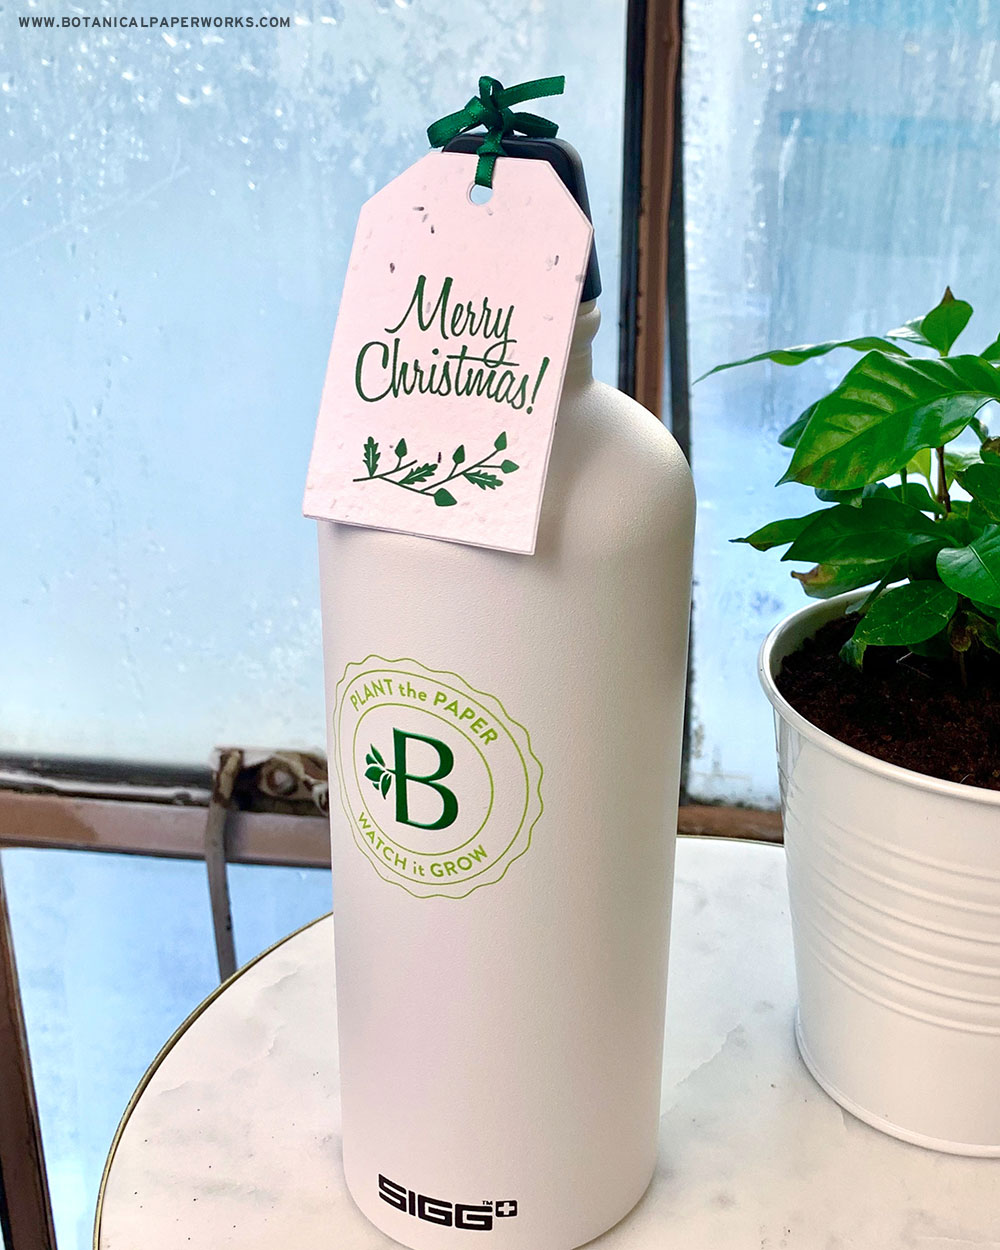 With a mission to give employees a gift that would reinforce the company's mission to reduce waste as well as create excitement around the company's new branding, Botanical PaperWorks shared branded Sigg water bottles.